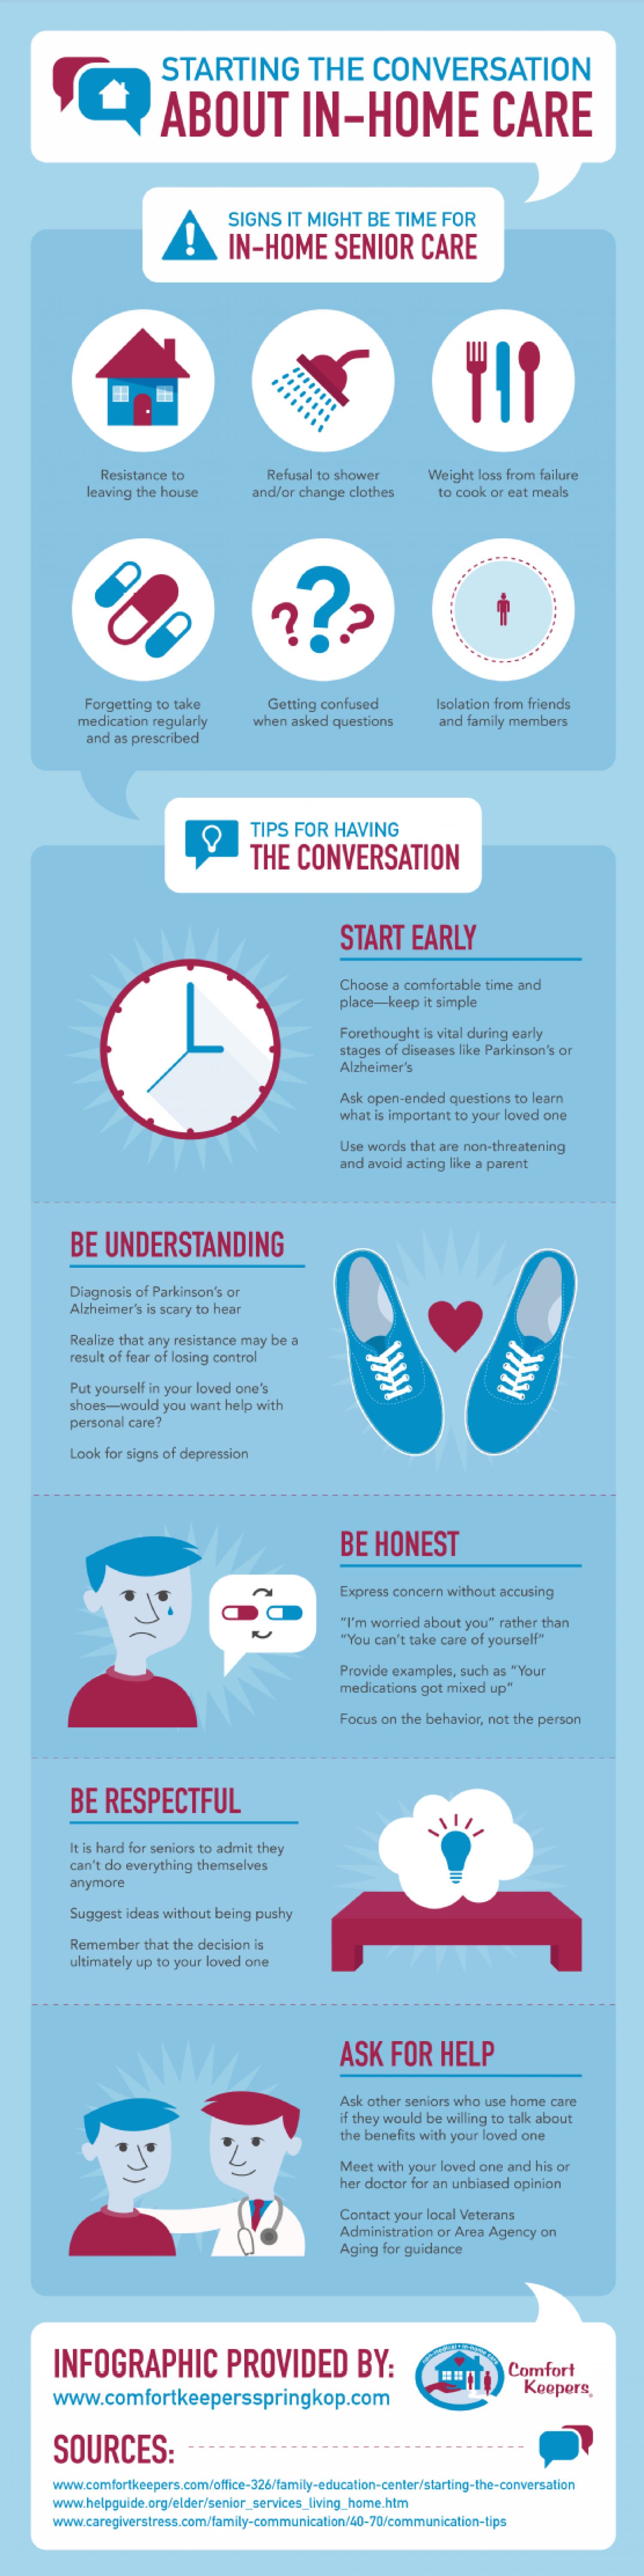 Starting the Conversation about In-Home Care Infographic